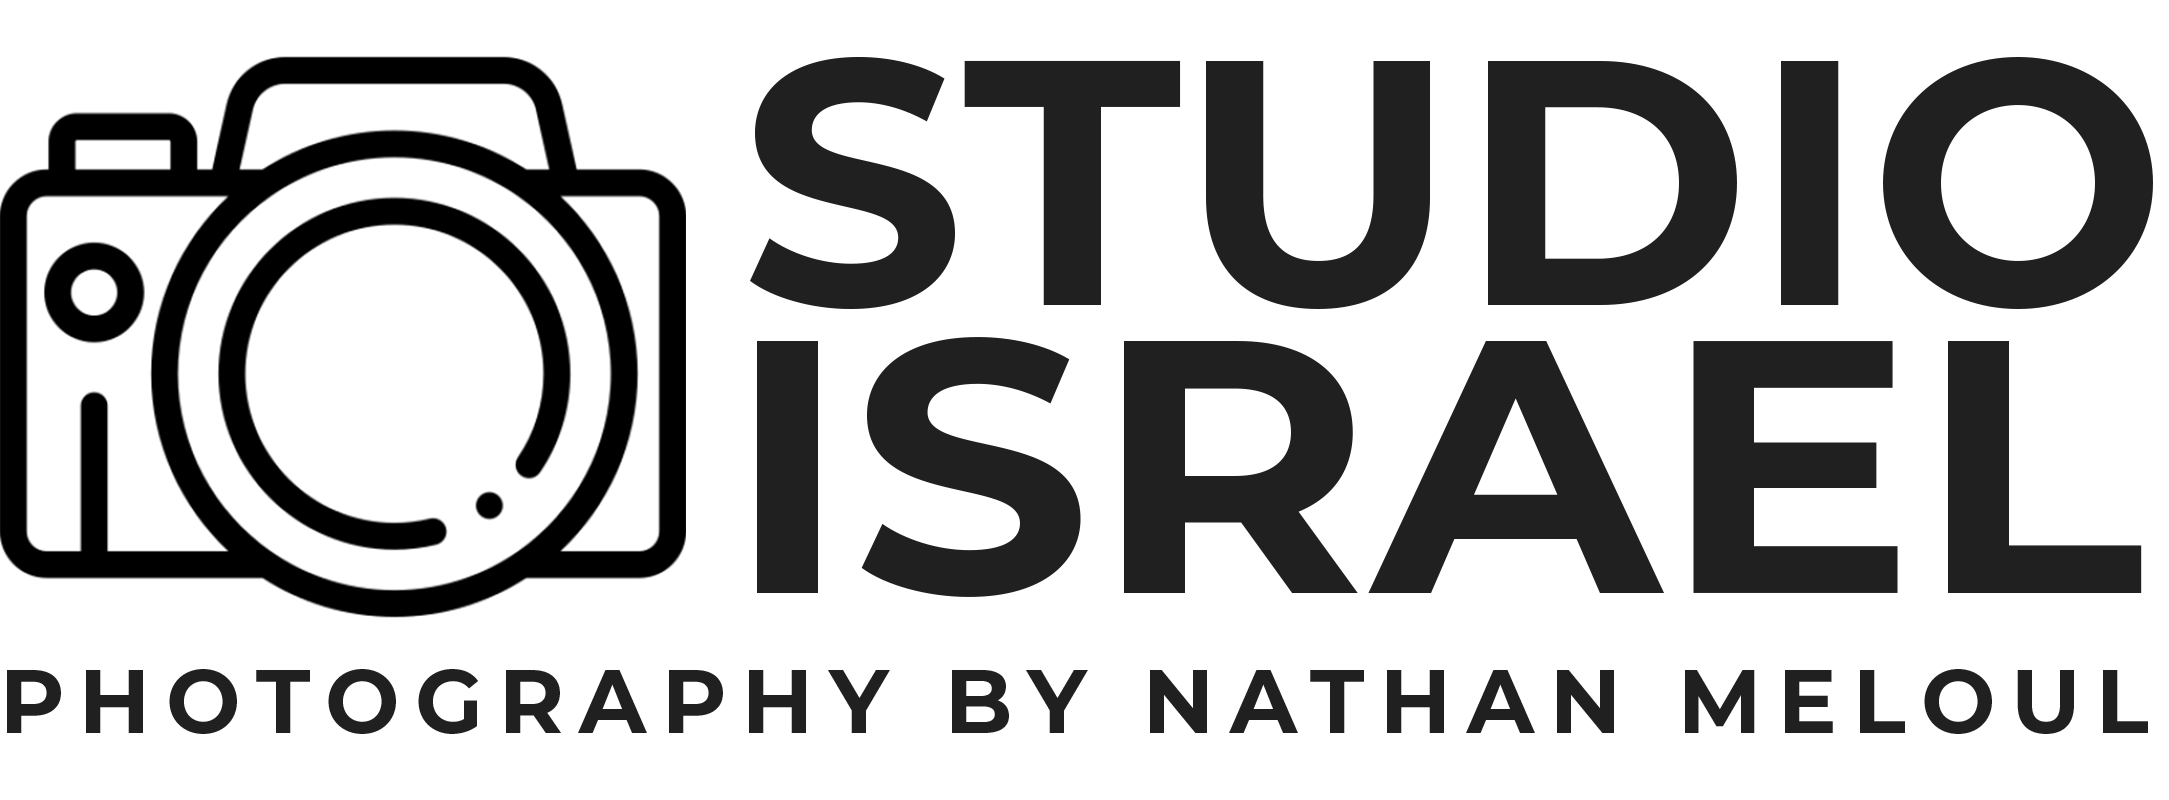 Studio Israel - Nathan Meloul Photography